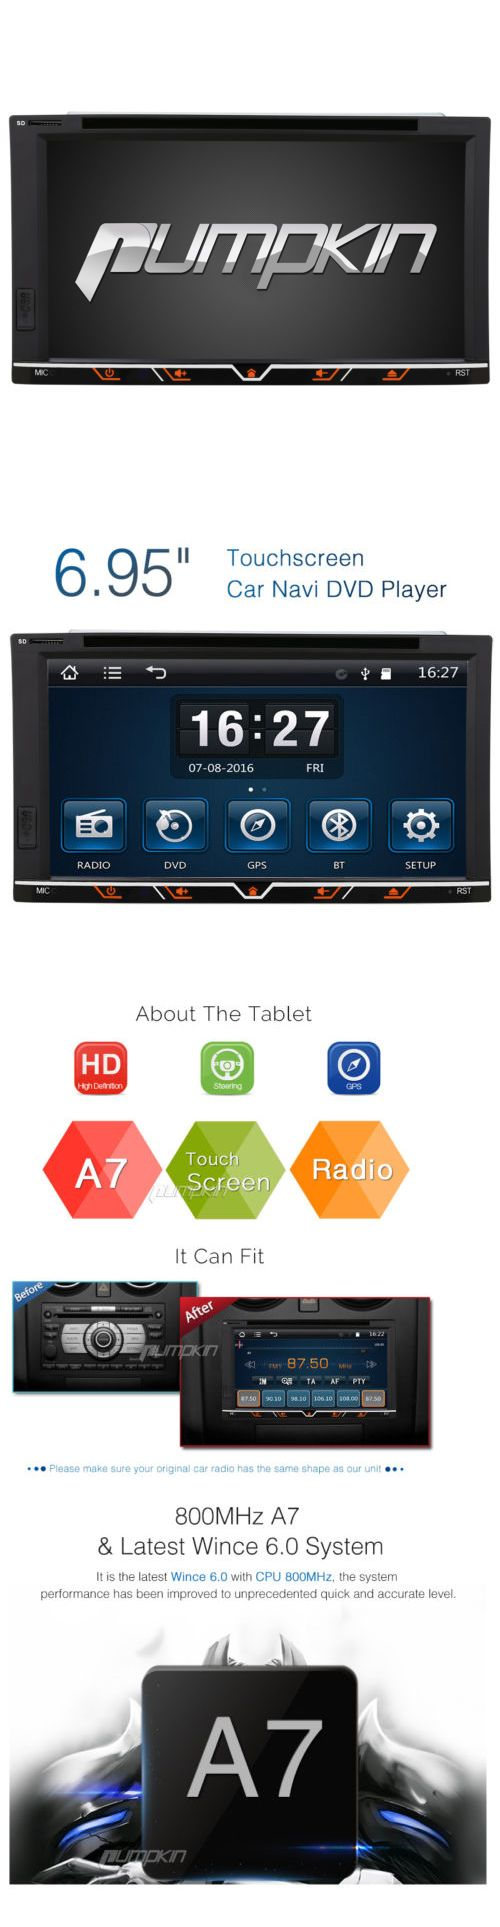 Vehicle Electronics And GPS: 6.95 Hd Touch Screen Double 2 Din Car Gps Stereo Dvd Player Bluetooth Radio+Map -> BUY IT NOW ONLY: $99 on eBay!